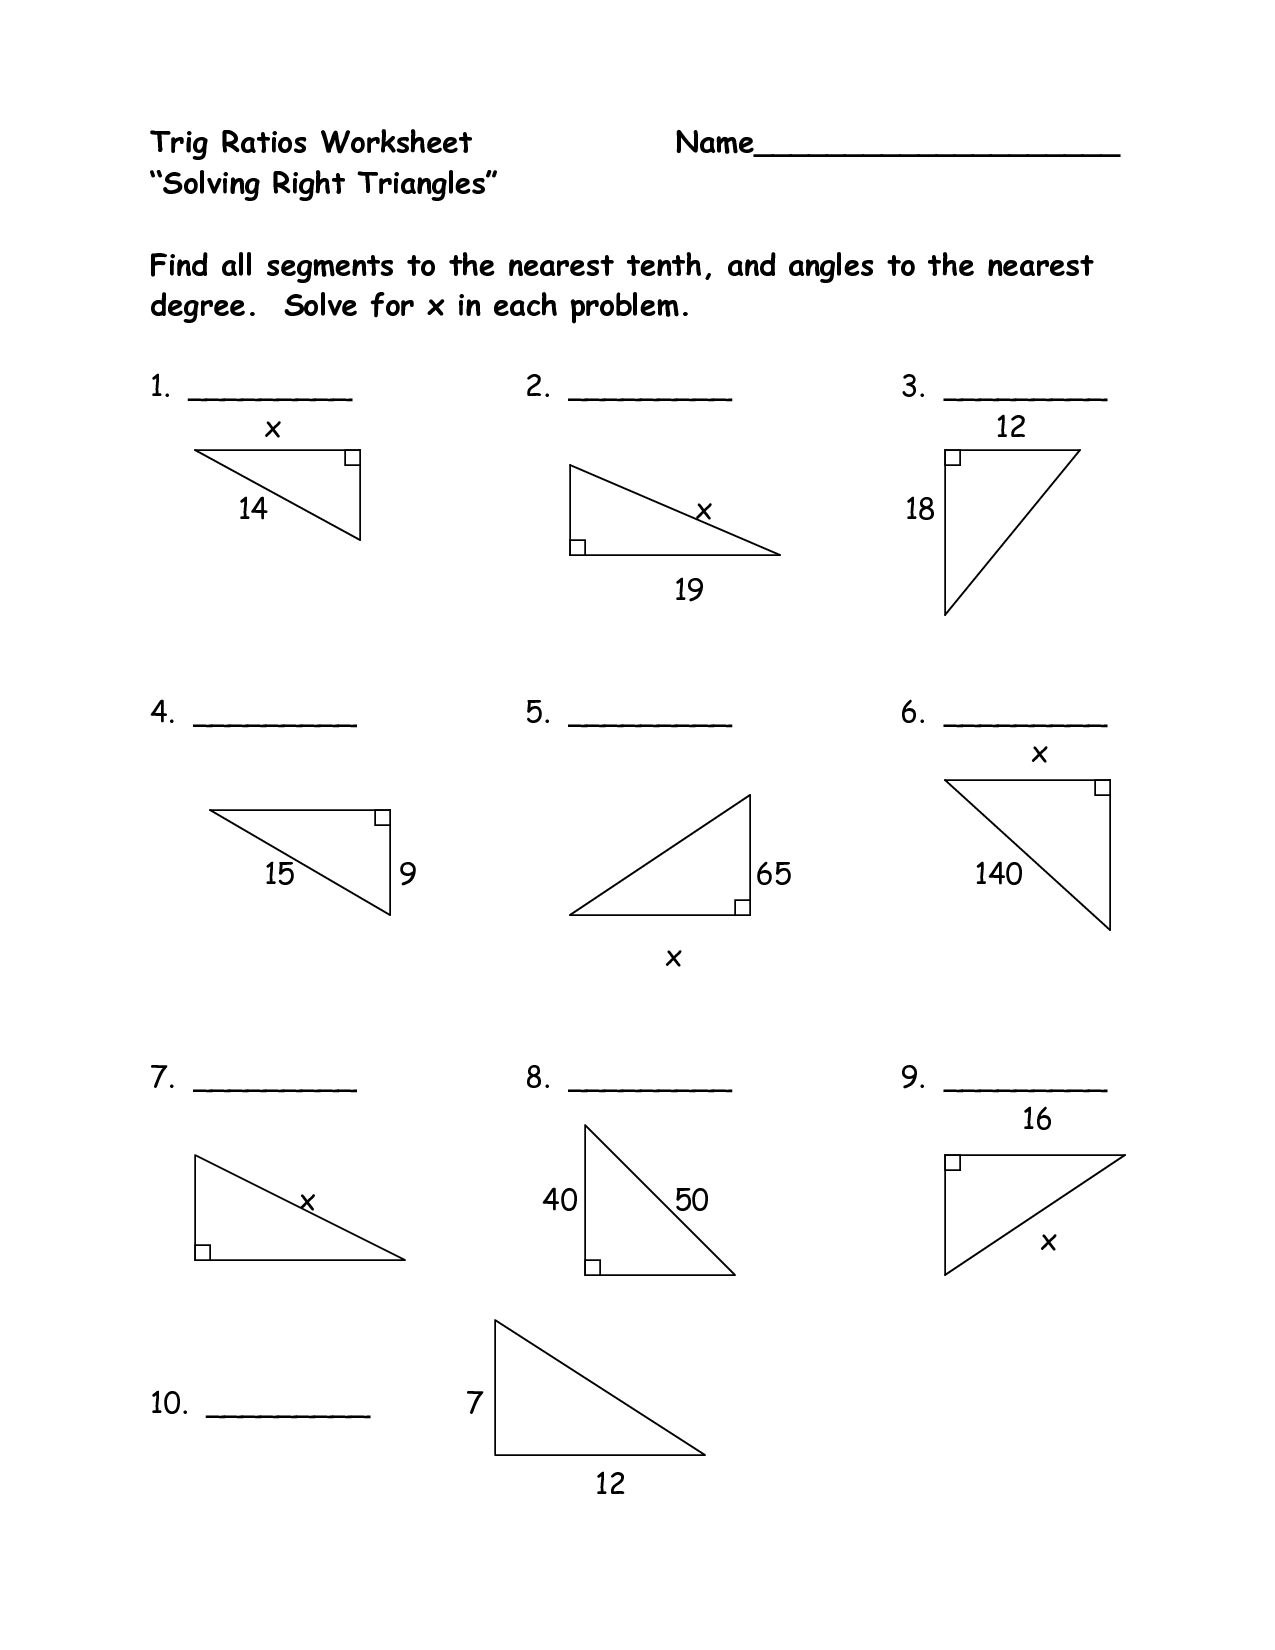 Trigonometry Ratios Worksheet Answers